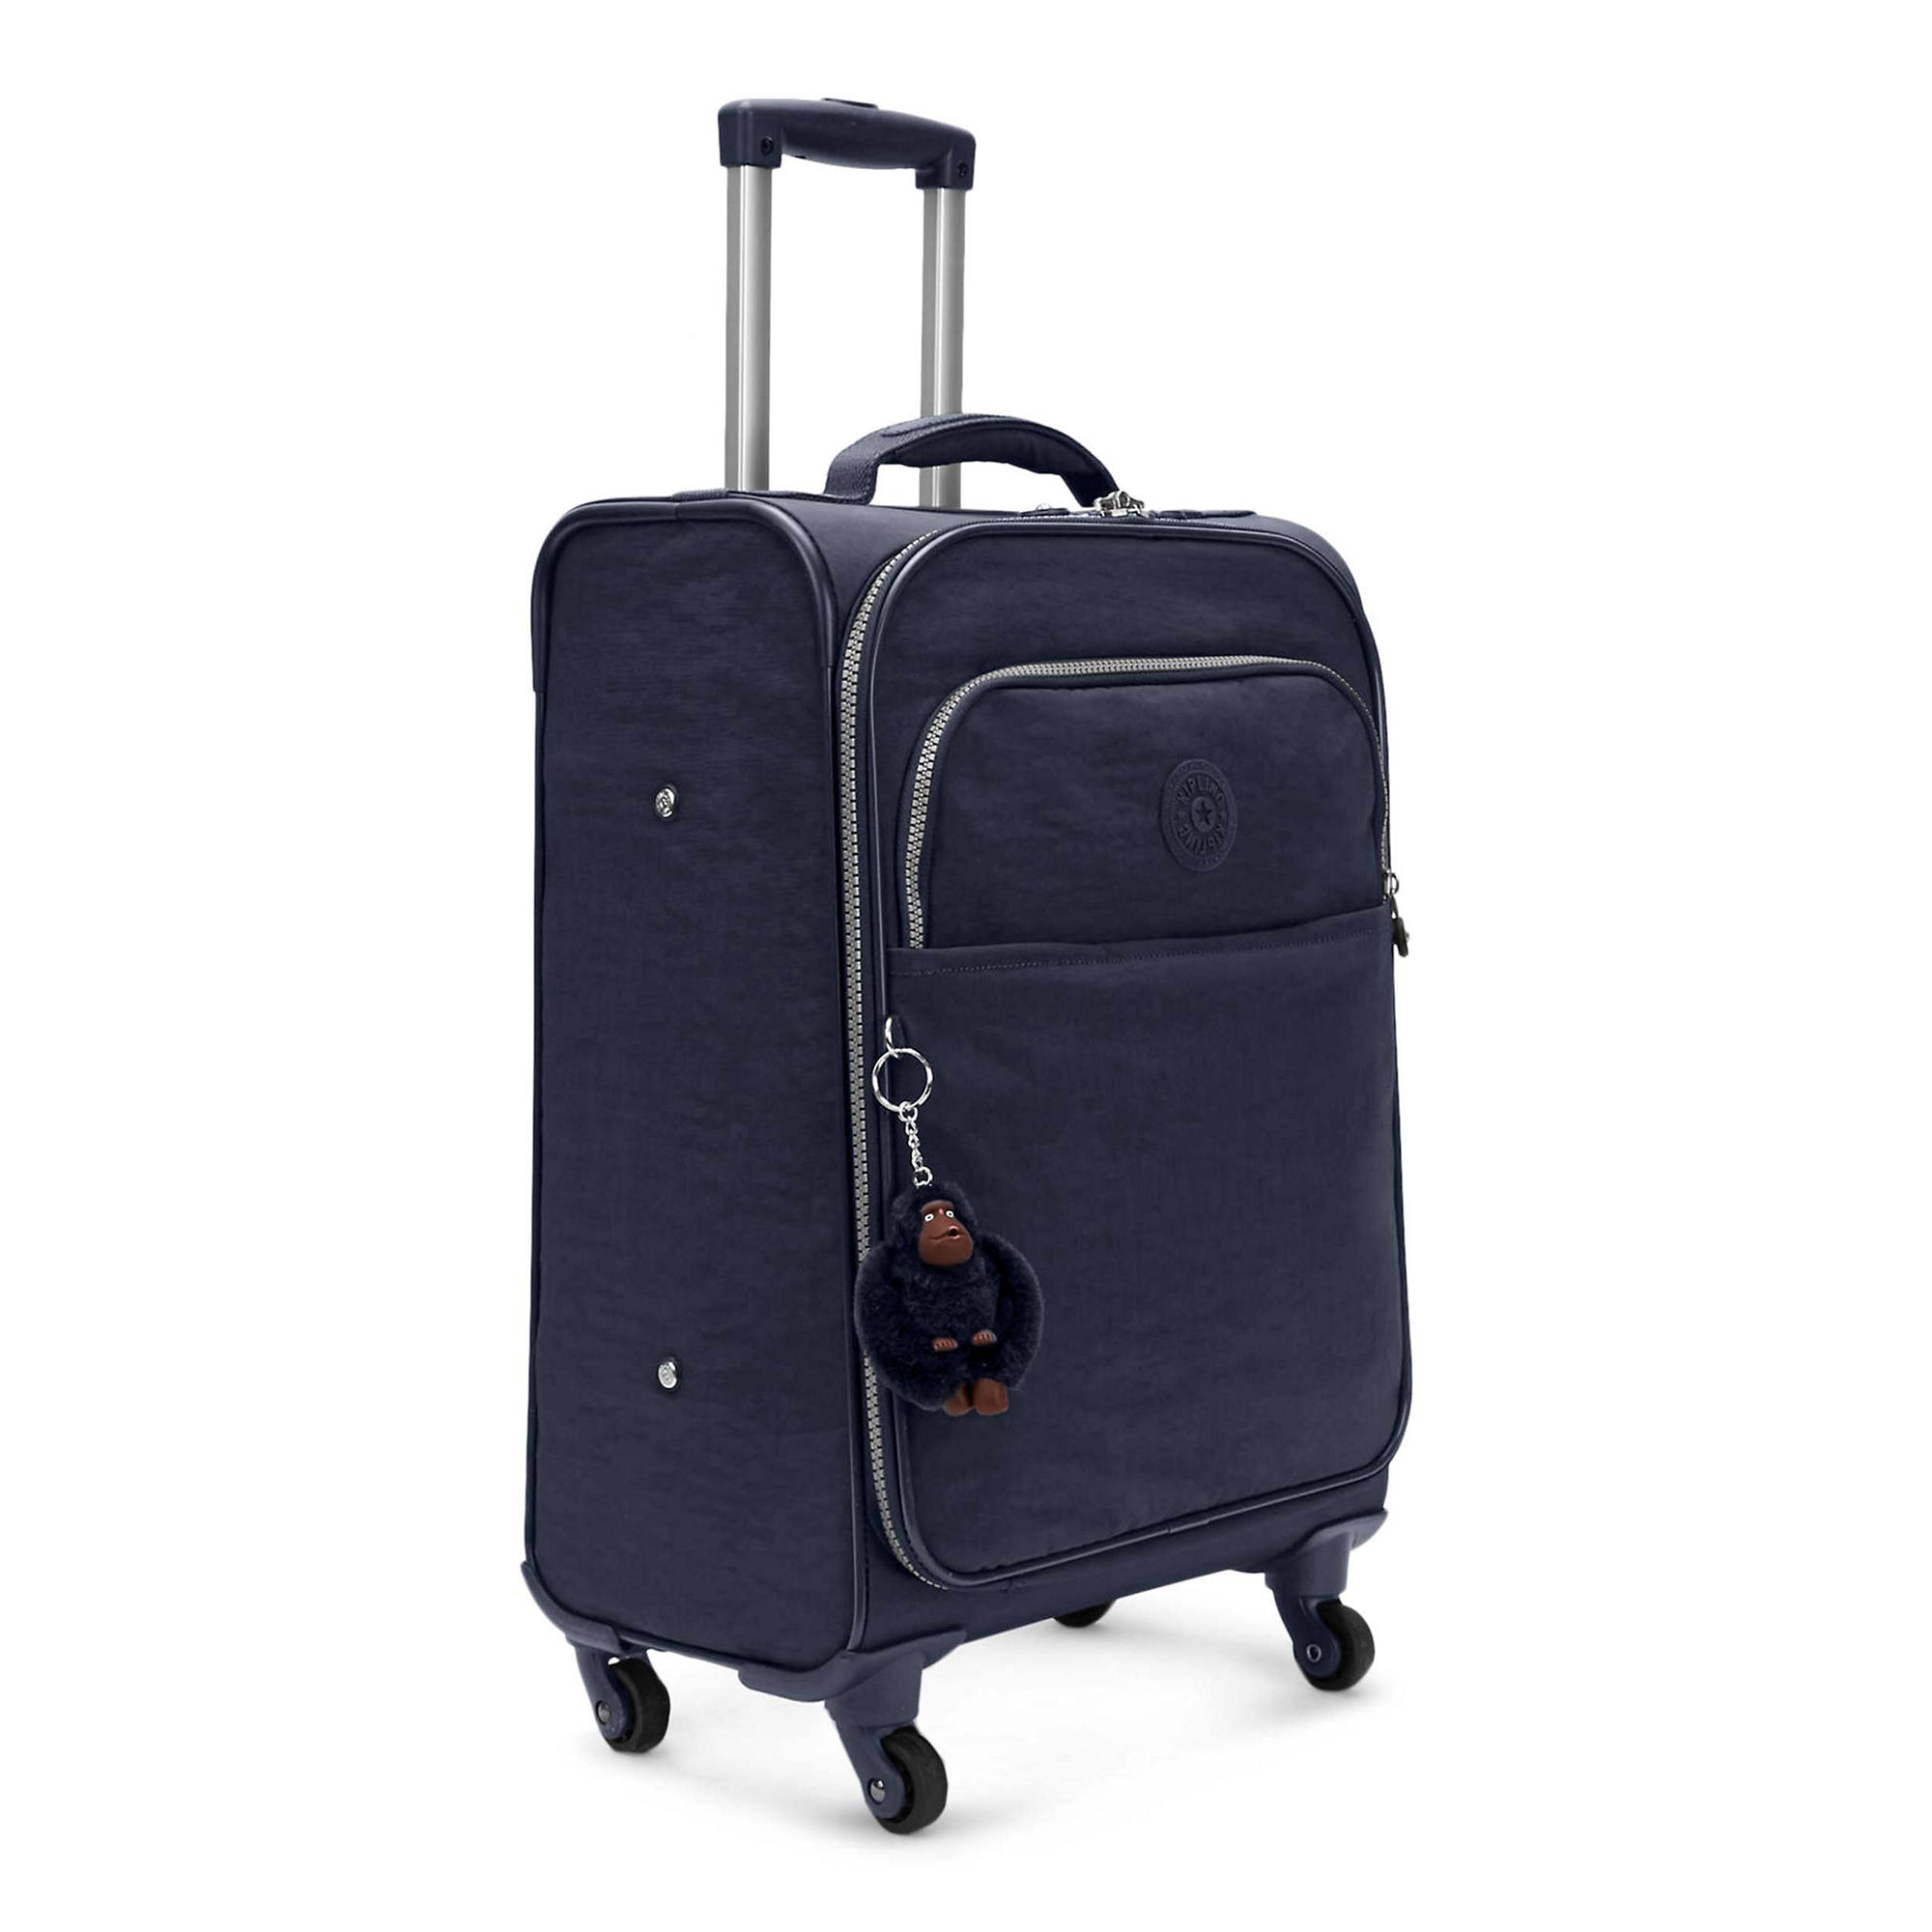 Details About Kipling Parker Small Printed Wheeled Carry On Luggage